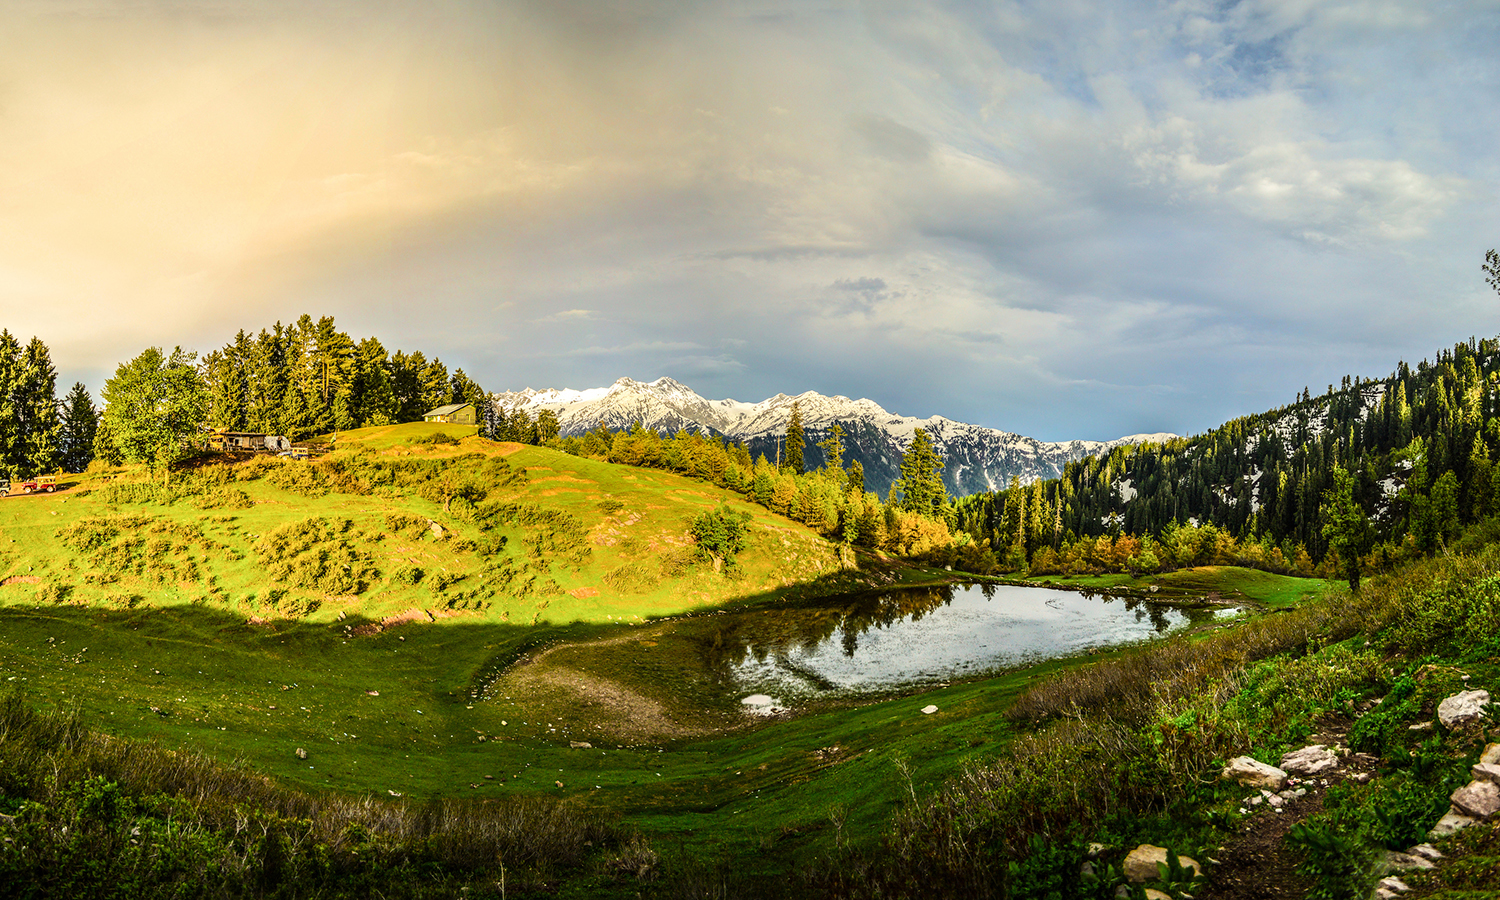 Siri Paye, Shogran, Kaghan Valley. — Photo by Adeel ur Rehman Mughal